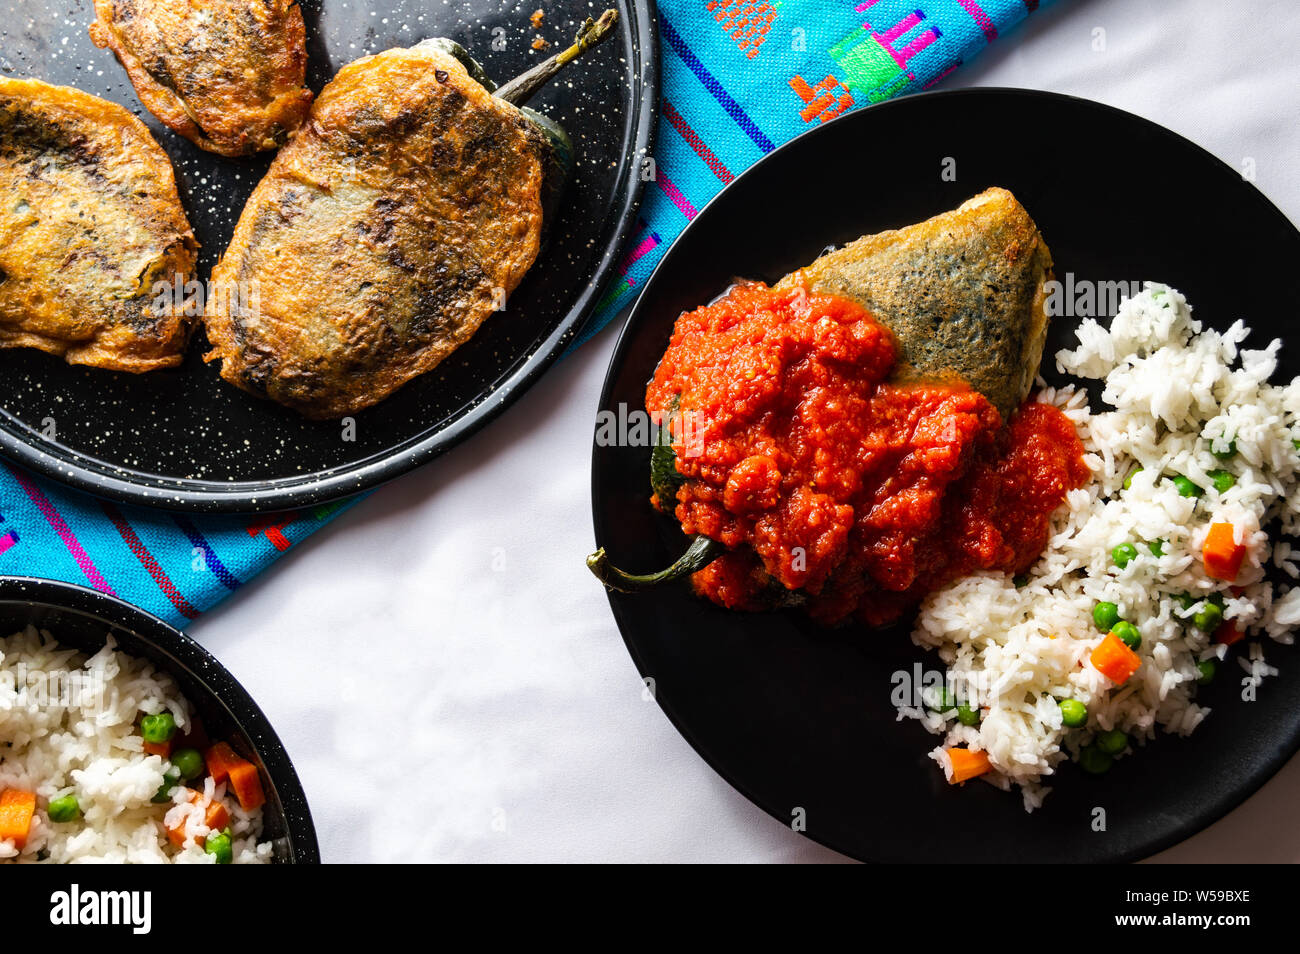 Mexican stuffed chiles (Chiles Rellenos), poblano chiles filled with cheese and coated with a light batter. Served with rice and red tomato sauce Stock Photo